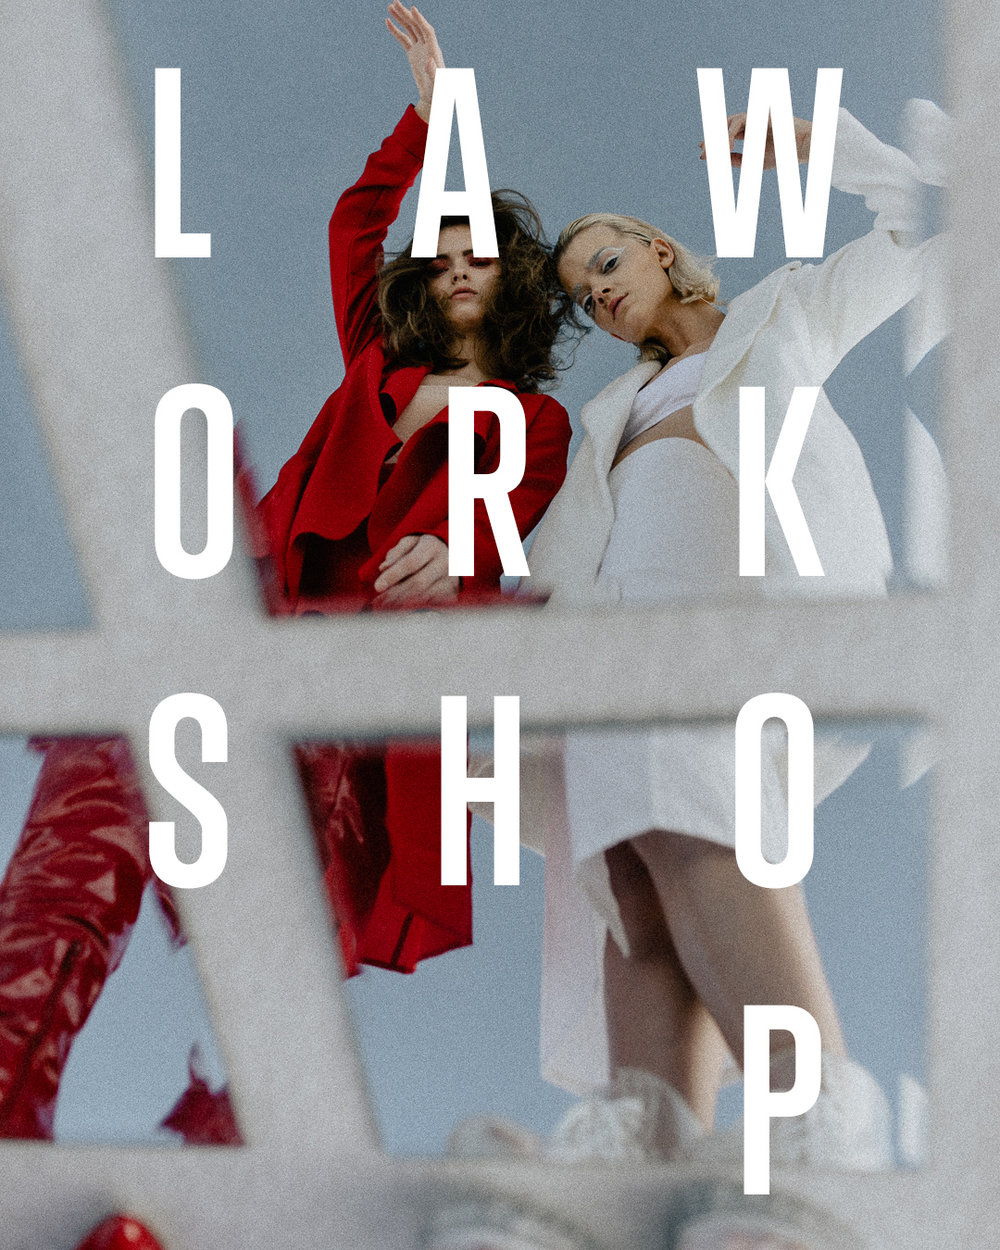 la workshop poster.jpg